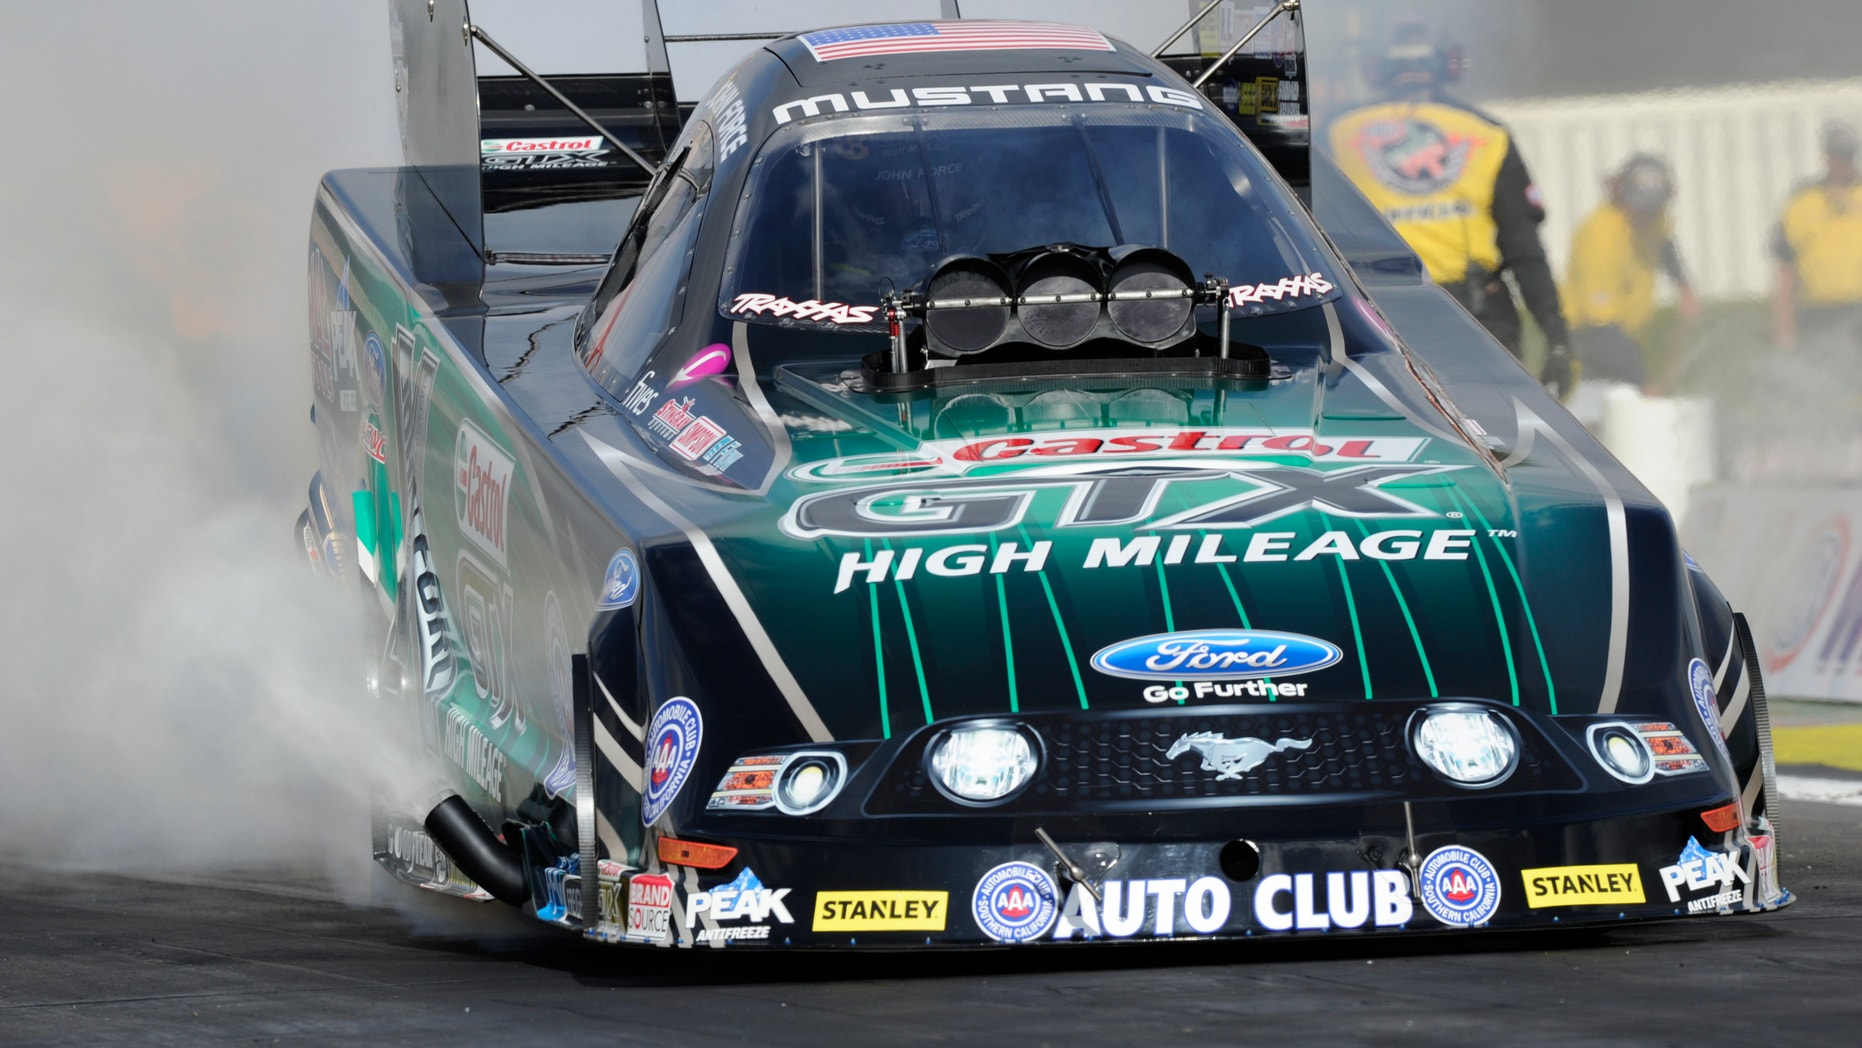 In this photo provided by NHRA, John Force takes part in Funny Car qualifying Friday, Feb. 7, 2014, in Pomona, Calif., for the NHRA Winternationals. Forced topped the field with a time of 3.966 seconds at 324.12 mph. (AP Photo/NHRA, Marc Gewertz)